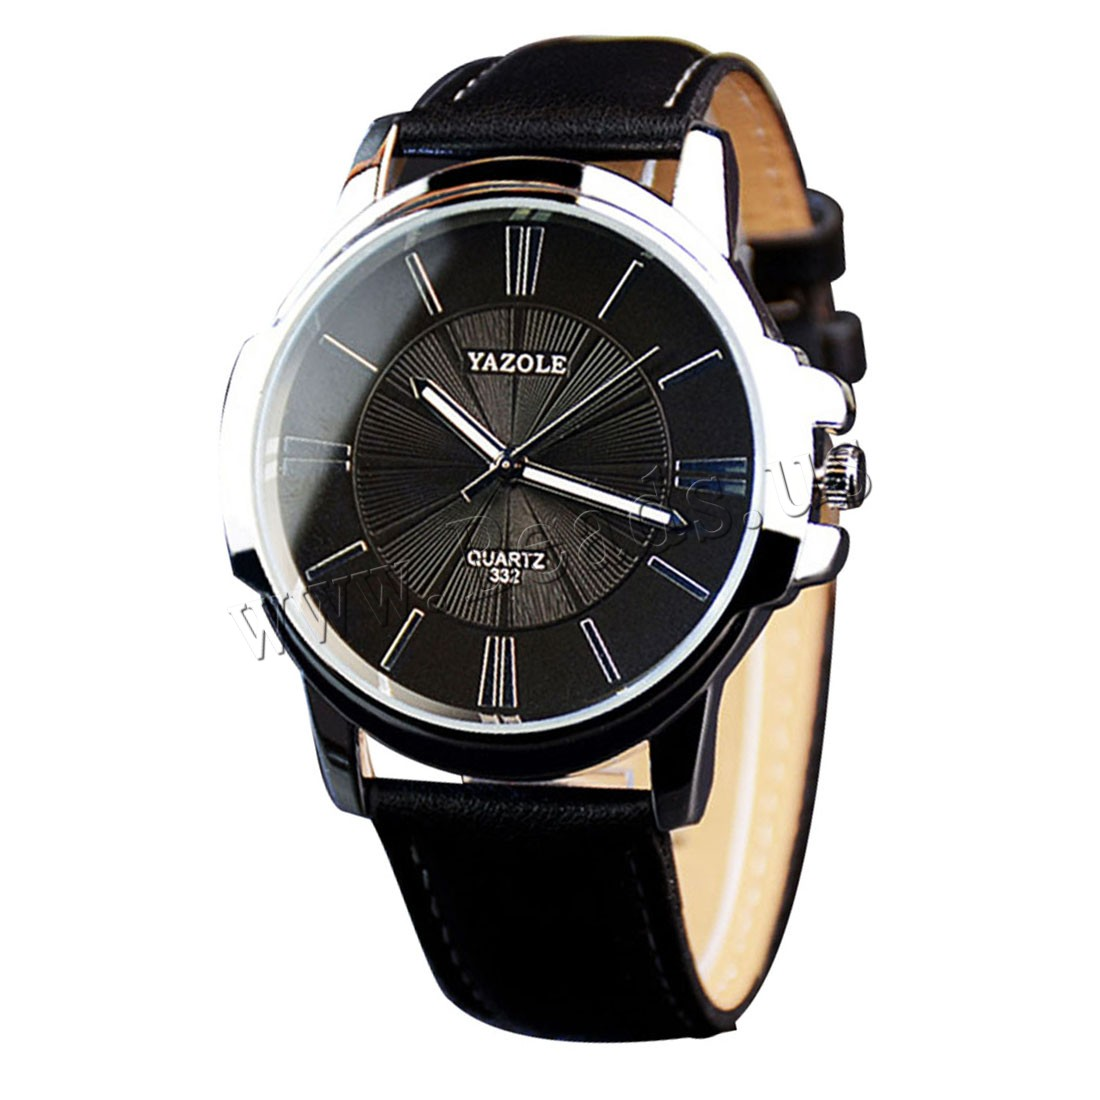 Buy Yazole® Unisex Jewelry Watch Cowhide Glass & Zinc Alloy platinum color plated adjustable & enamel nickel lead & cadmium free Approx 9.5 Inch Sold PC